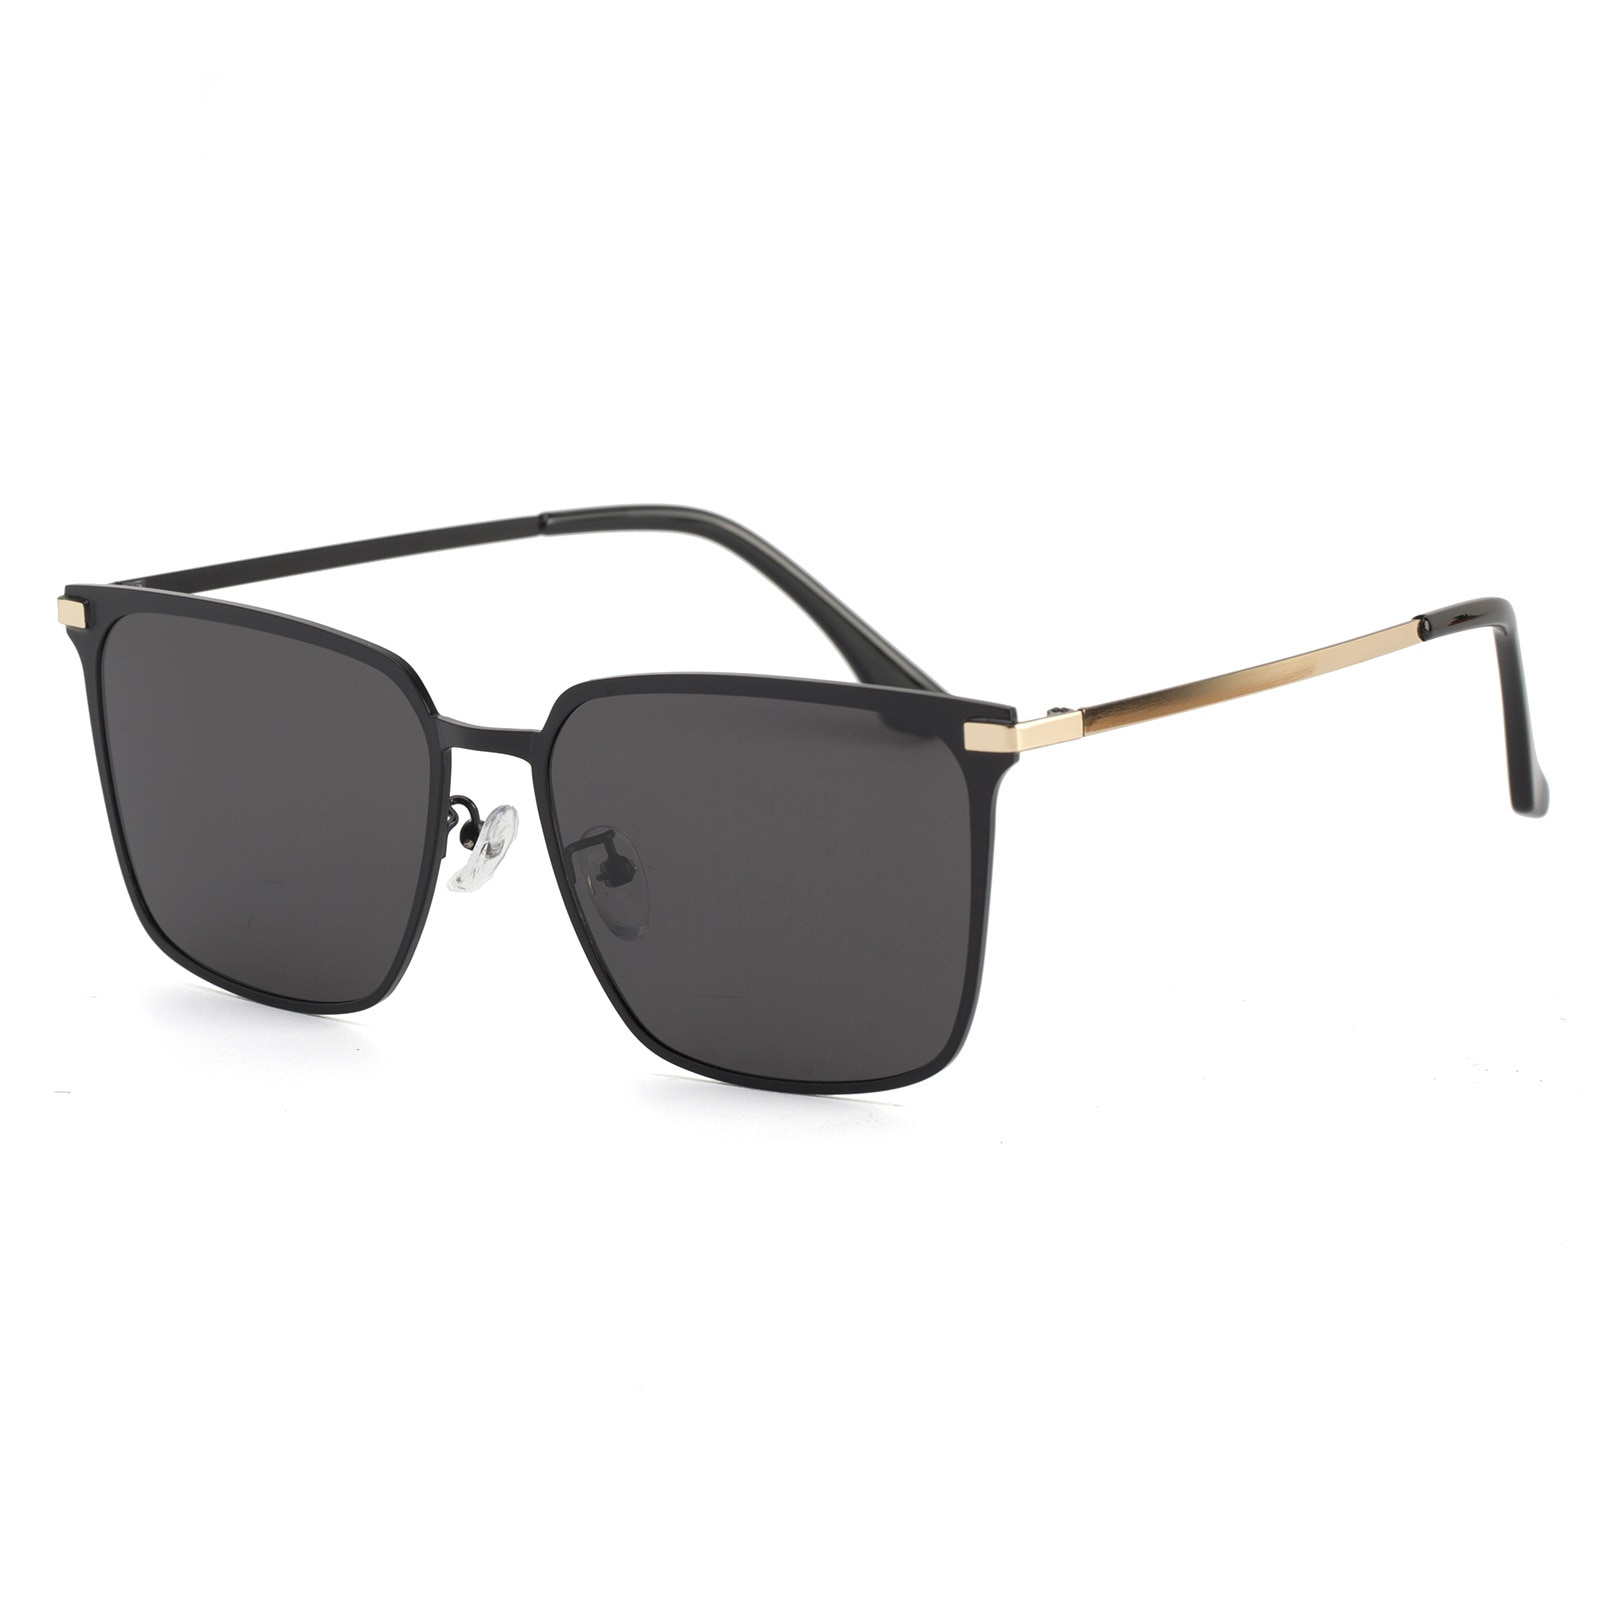 New High Definition Polarized Sunglasses for Men 3099 Square Metal European and American Trend